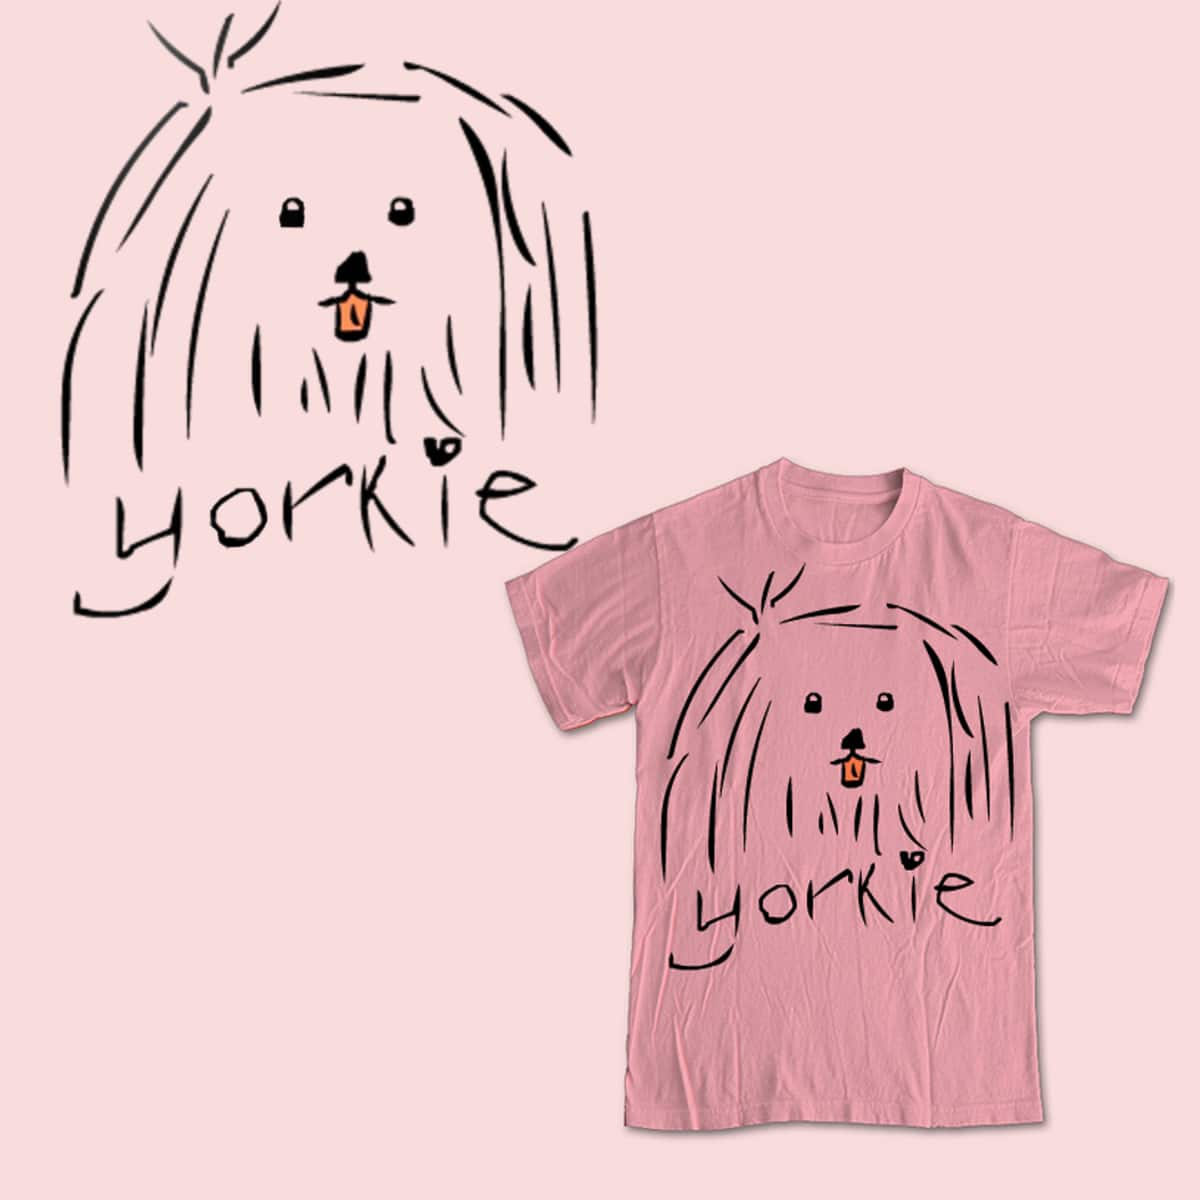 Yorkie Love by blackblackocean on Threadless